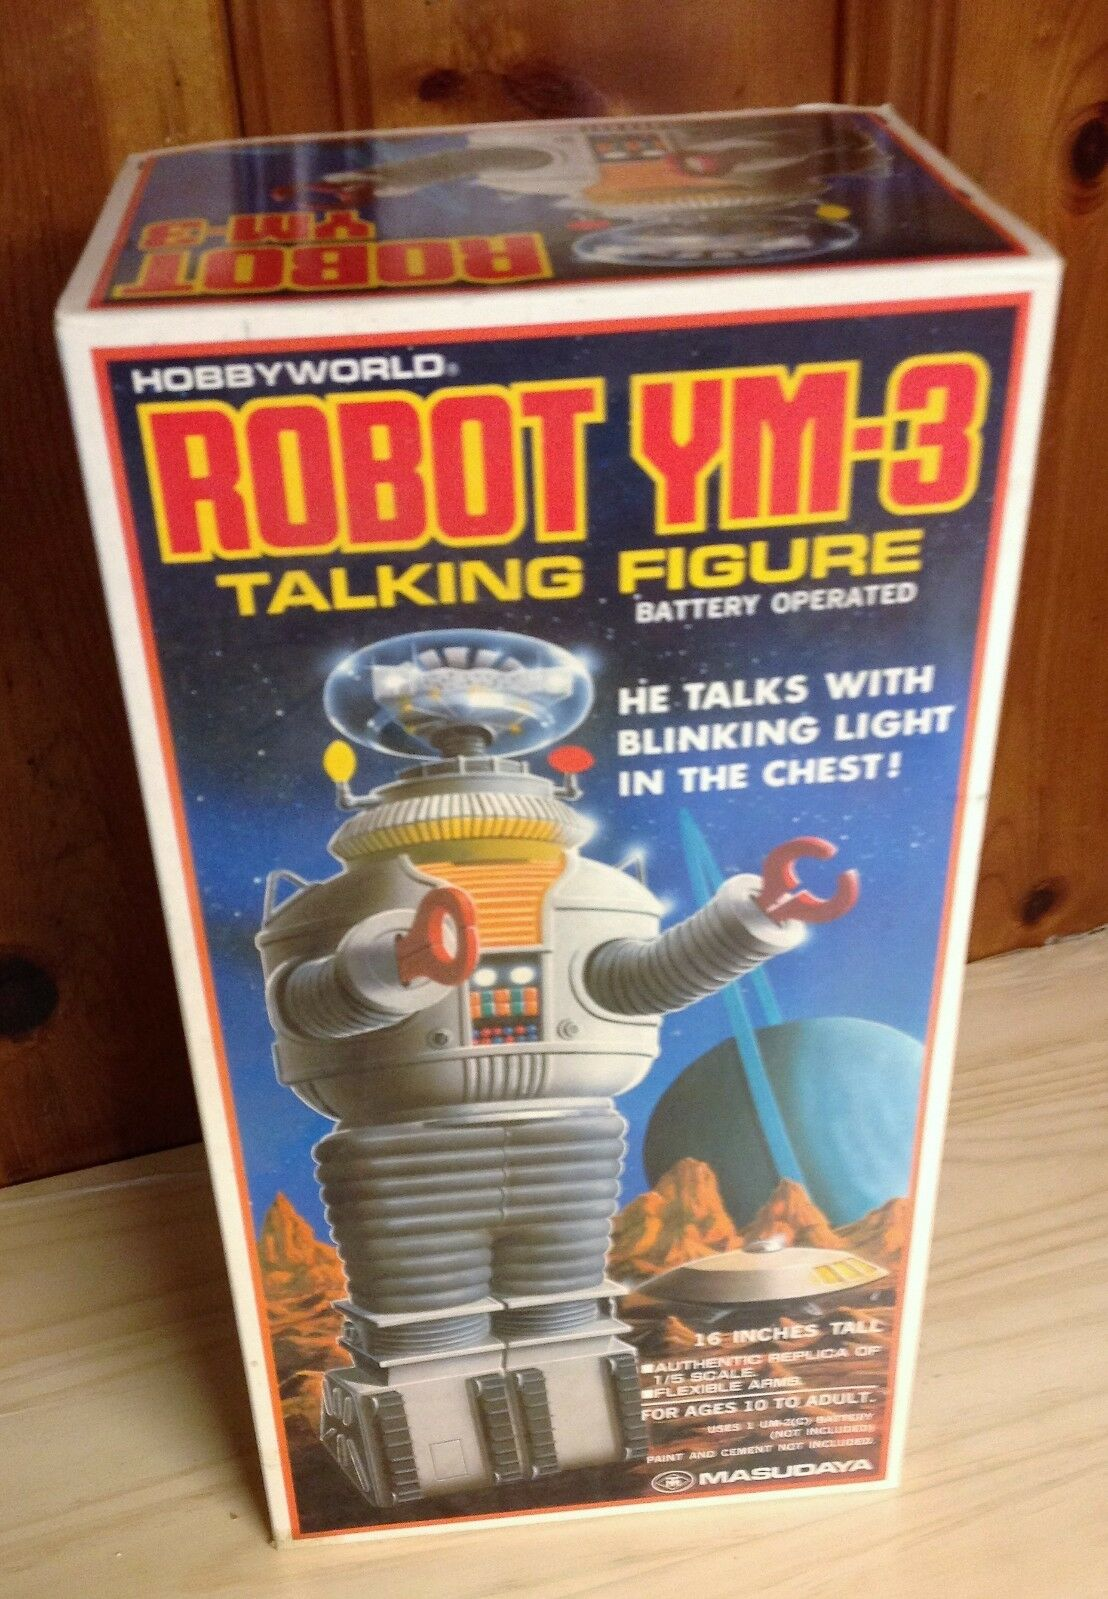 VINTAGE MASUDAYA TALKING LOST IN SPACE YM-3 ROBOT 16  TALL FIGURE WITH LIGHT